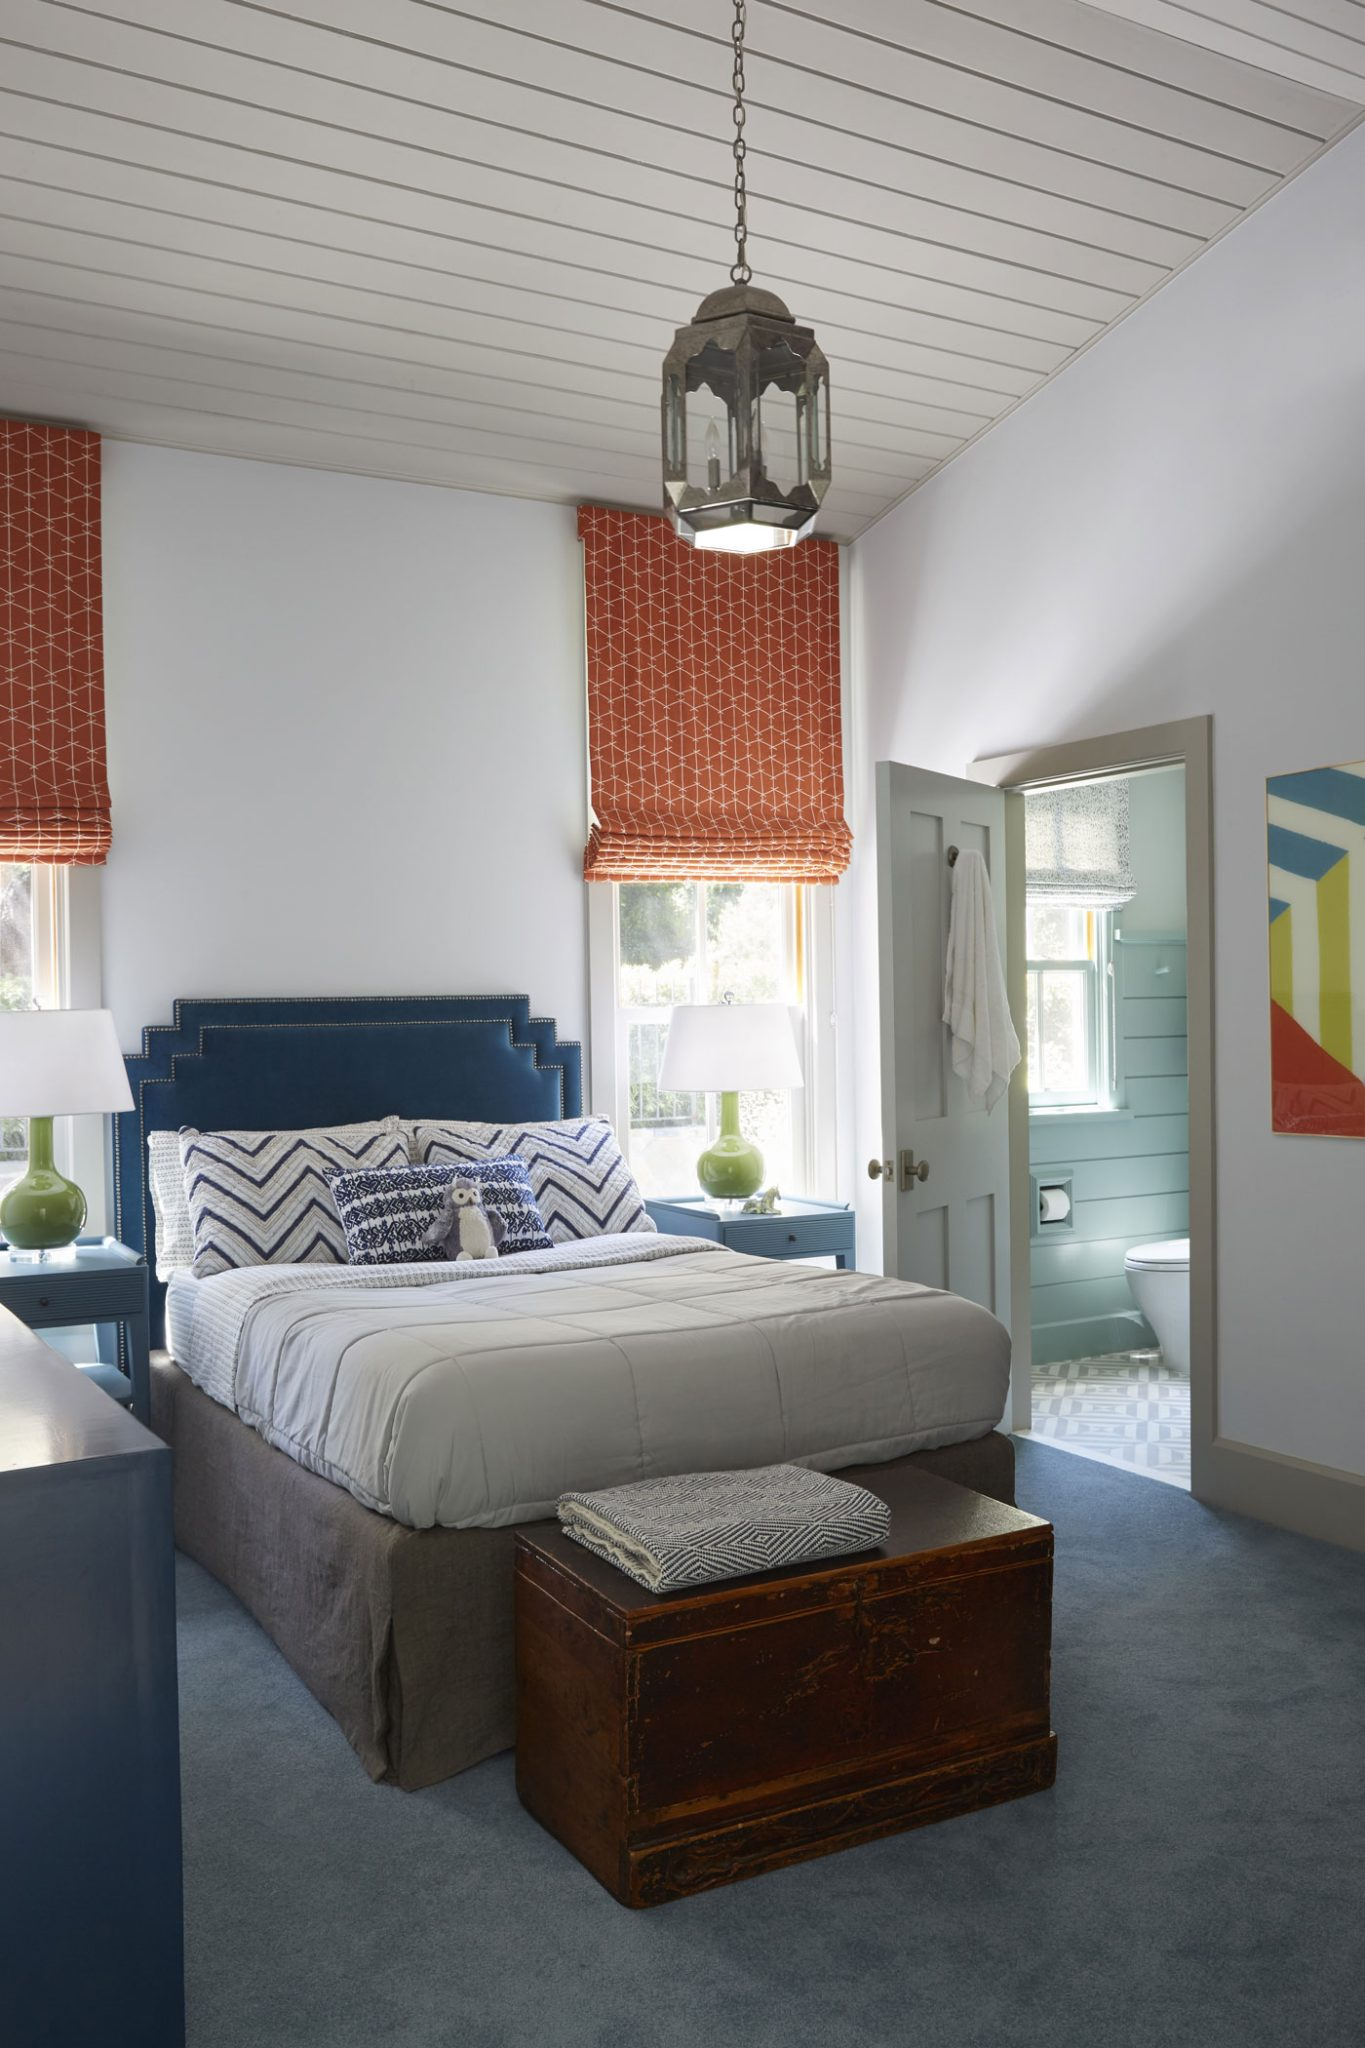 Boy's Bedroom in a Ranch House Renovation by Tim Barber Ltd.